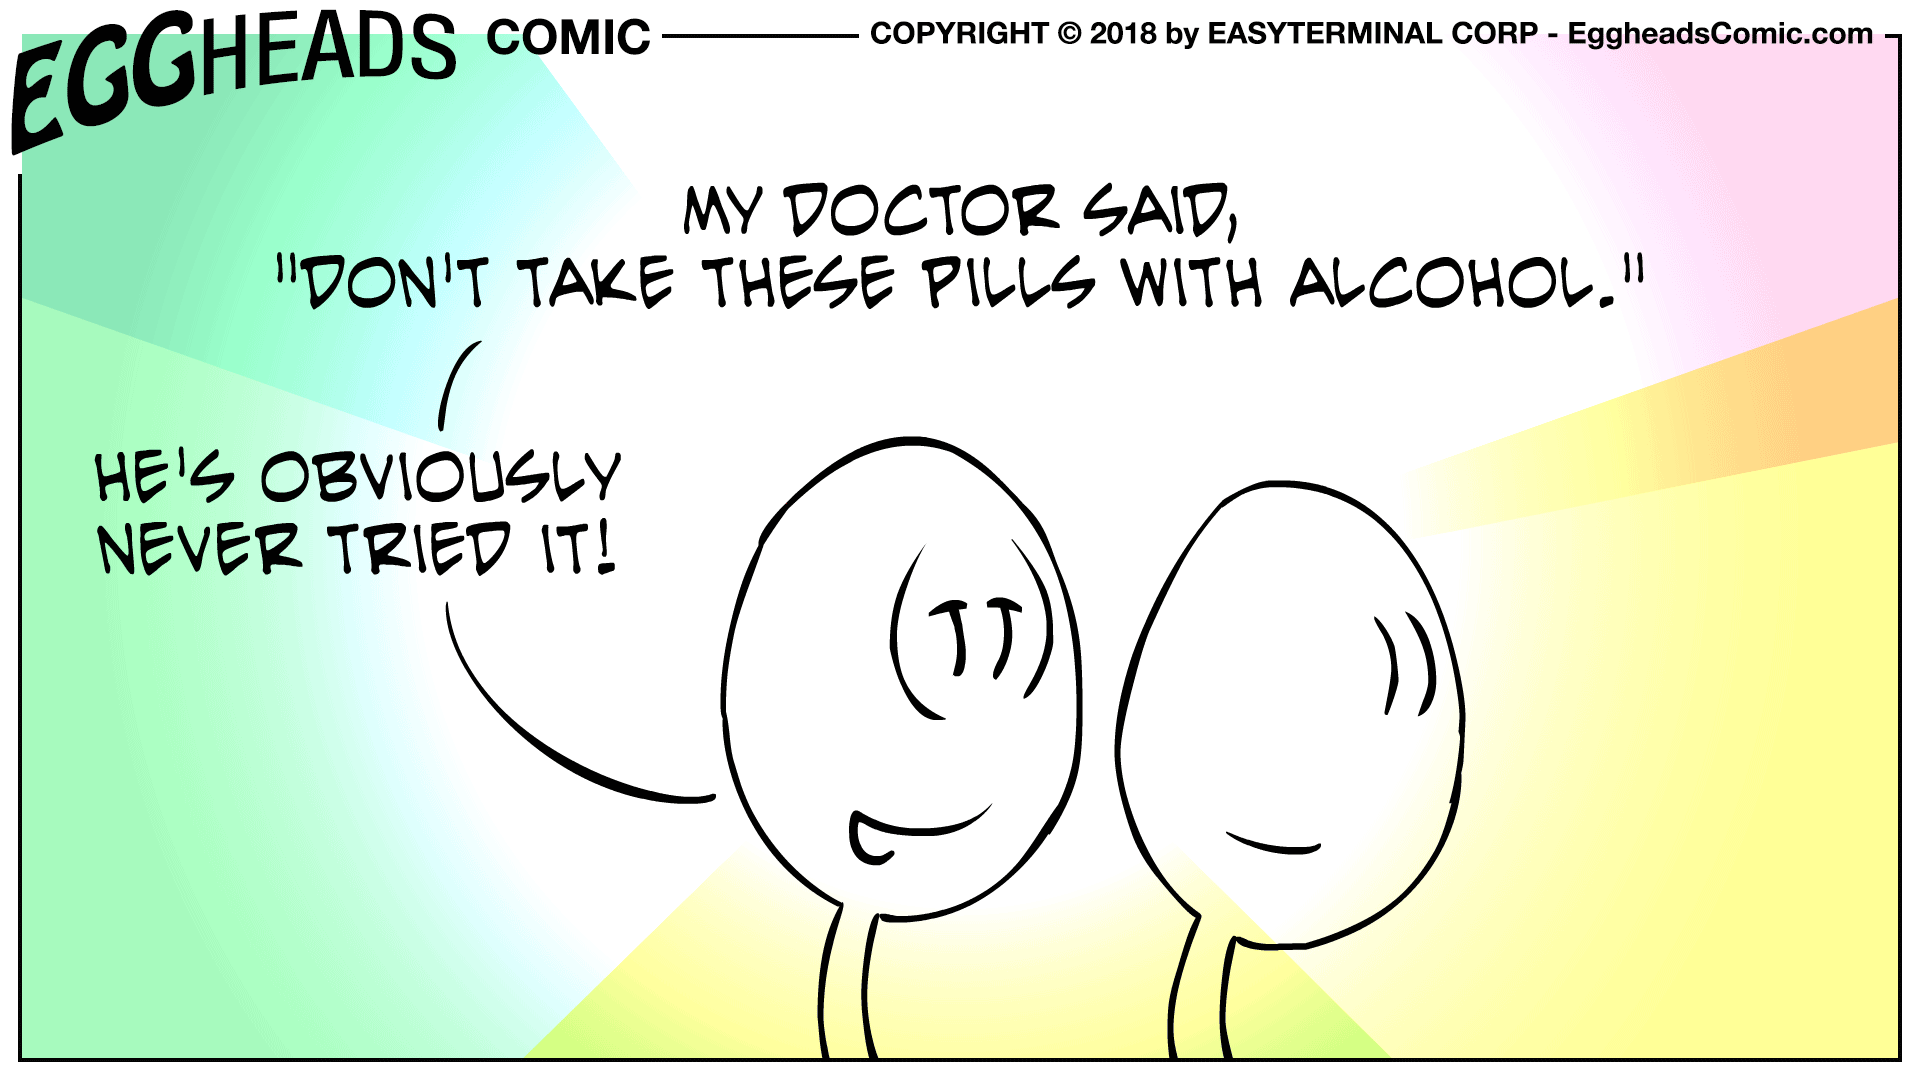 Webcomic Eggheads Comic Strip 052 My Doctor Said